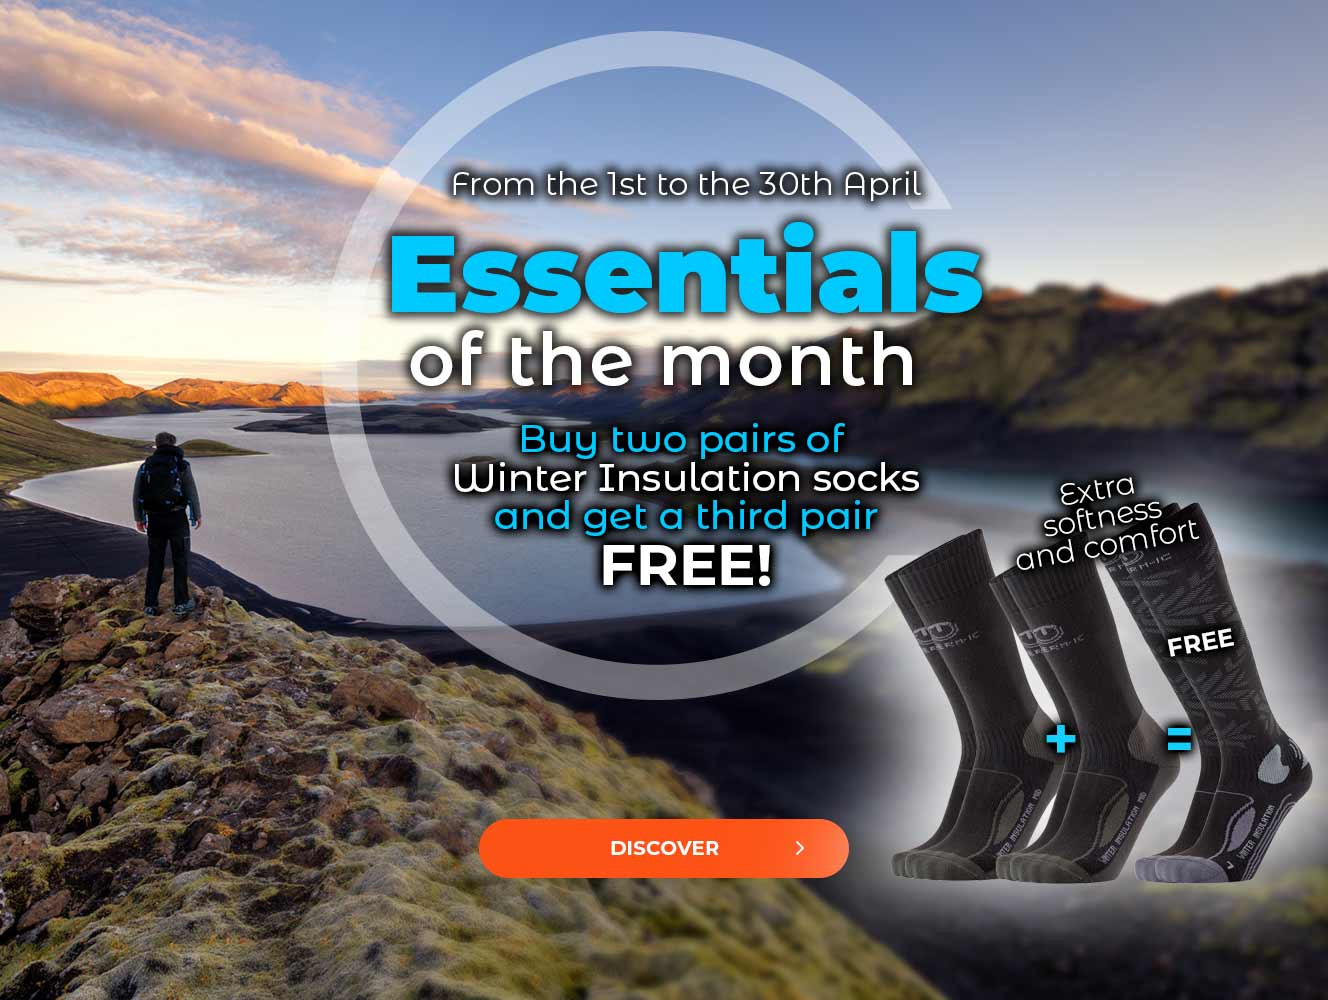 Buy two pairs of Winter Insulation socks and get one for free